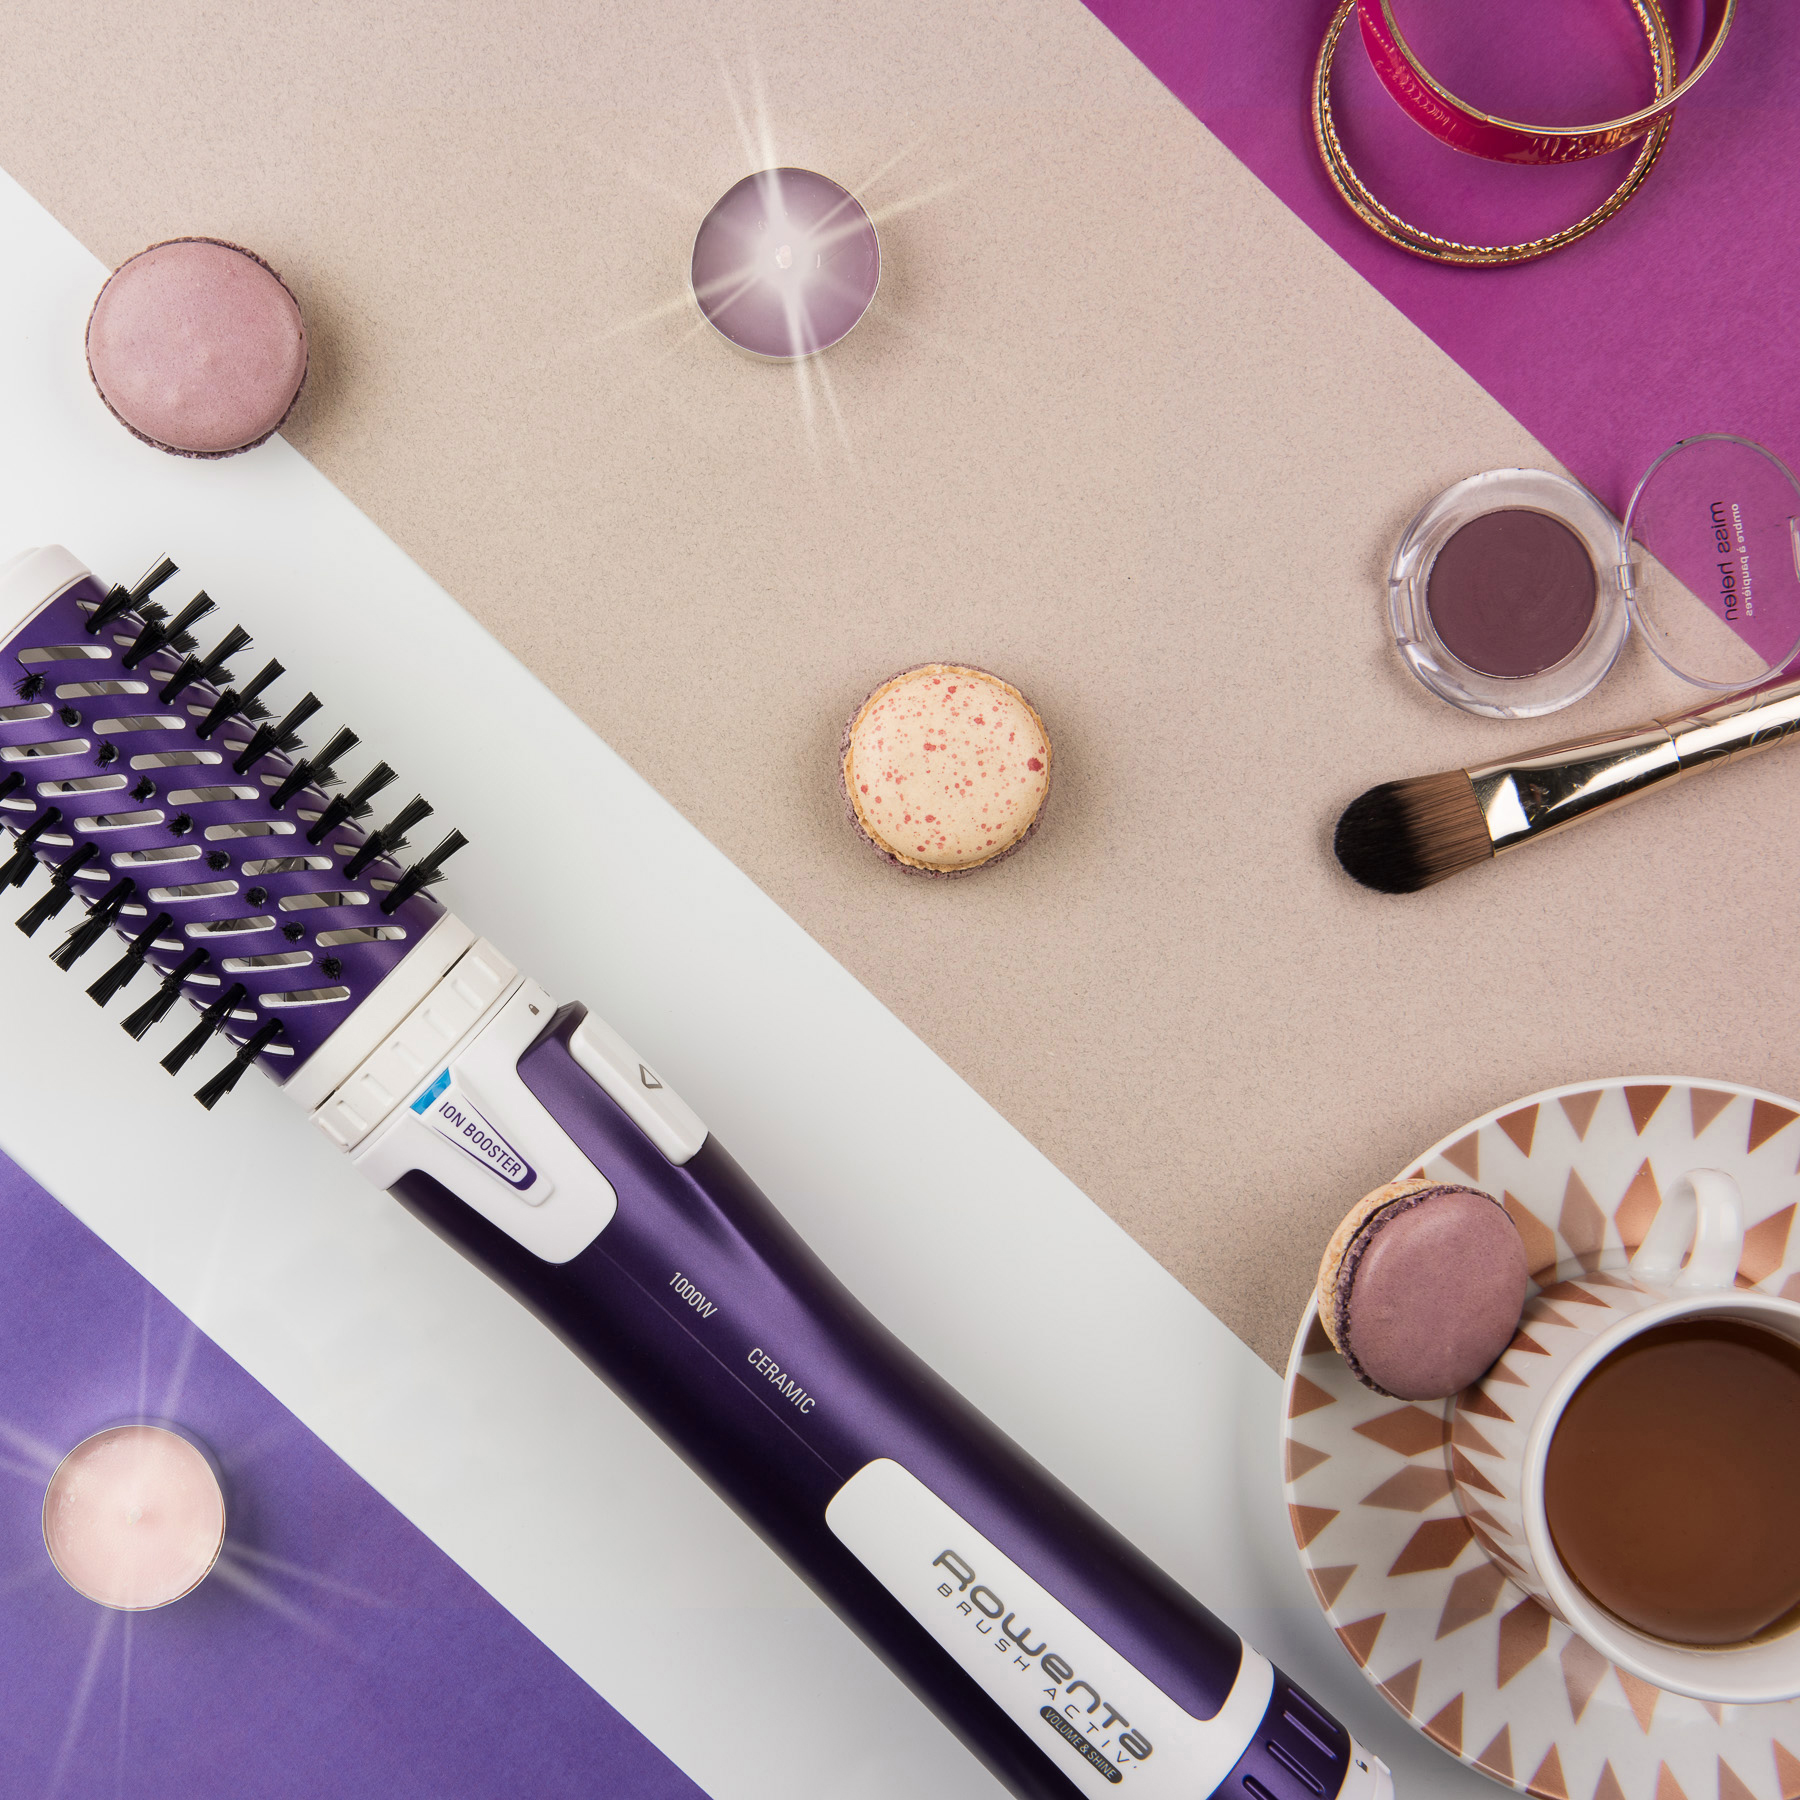 Rowenta Brush Activ' Volume & Shine1